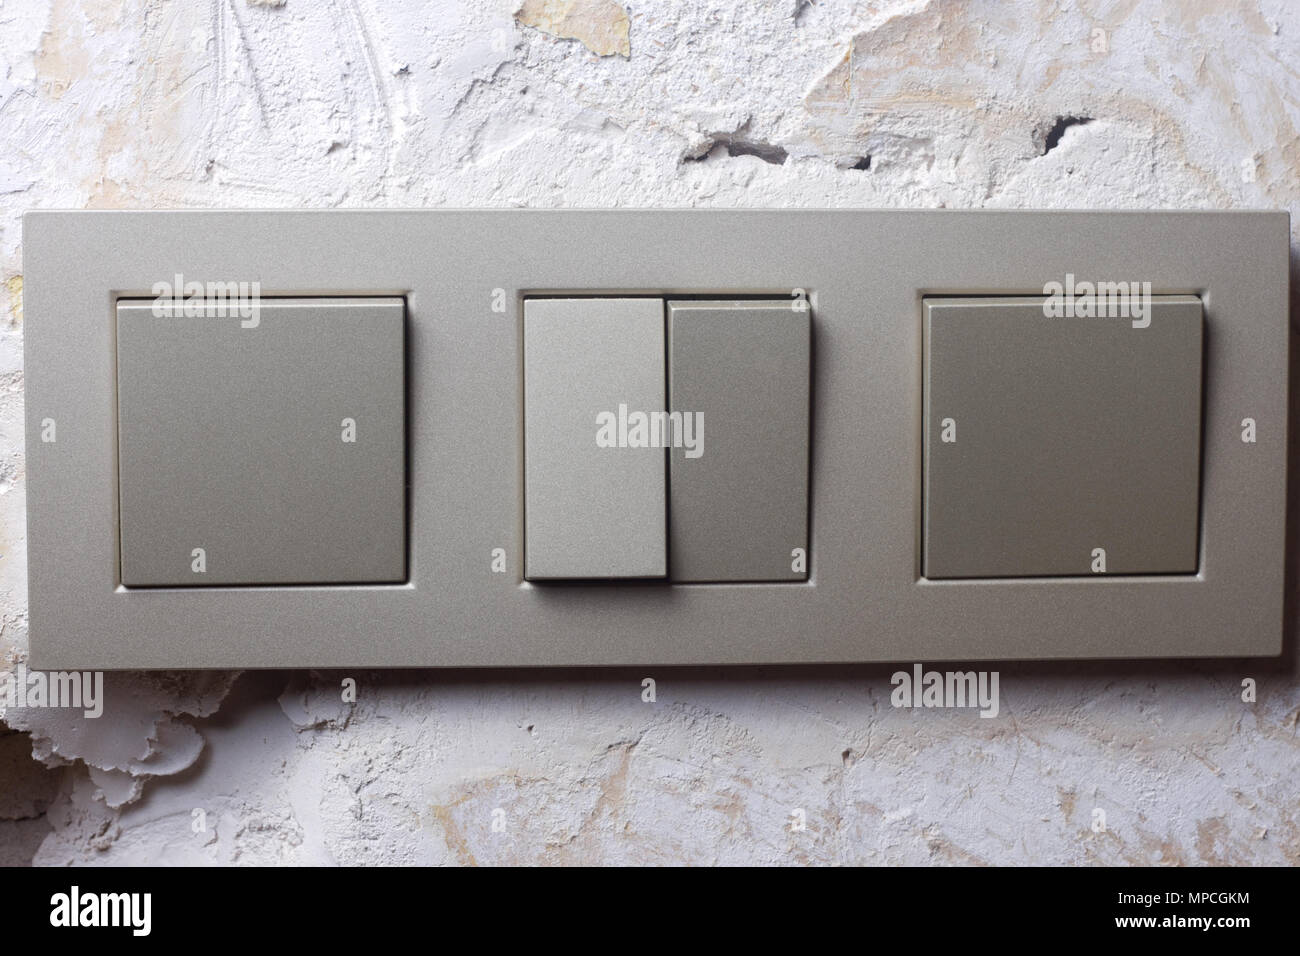 Plaster Light Switch Stock Photos & Plaster Light Switch Stock ...